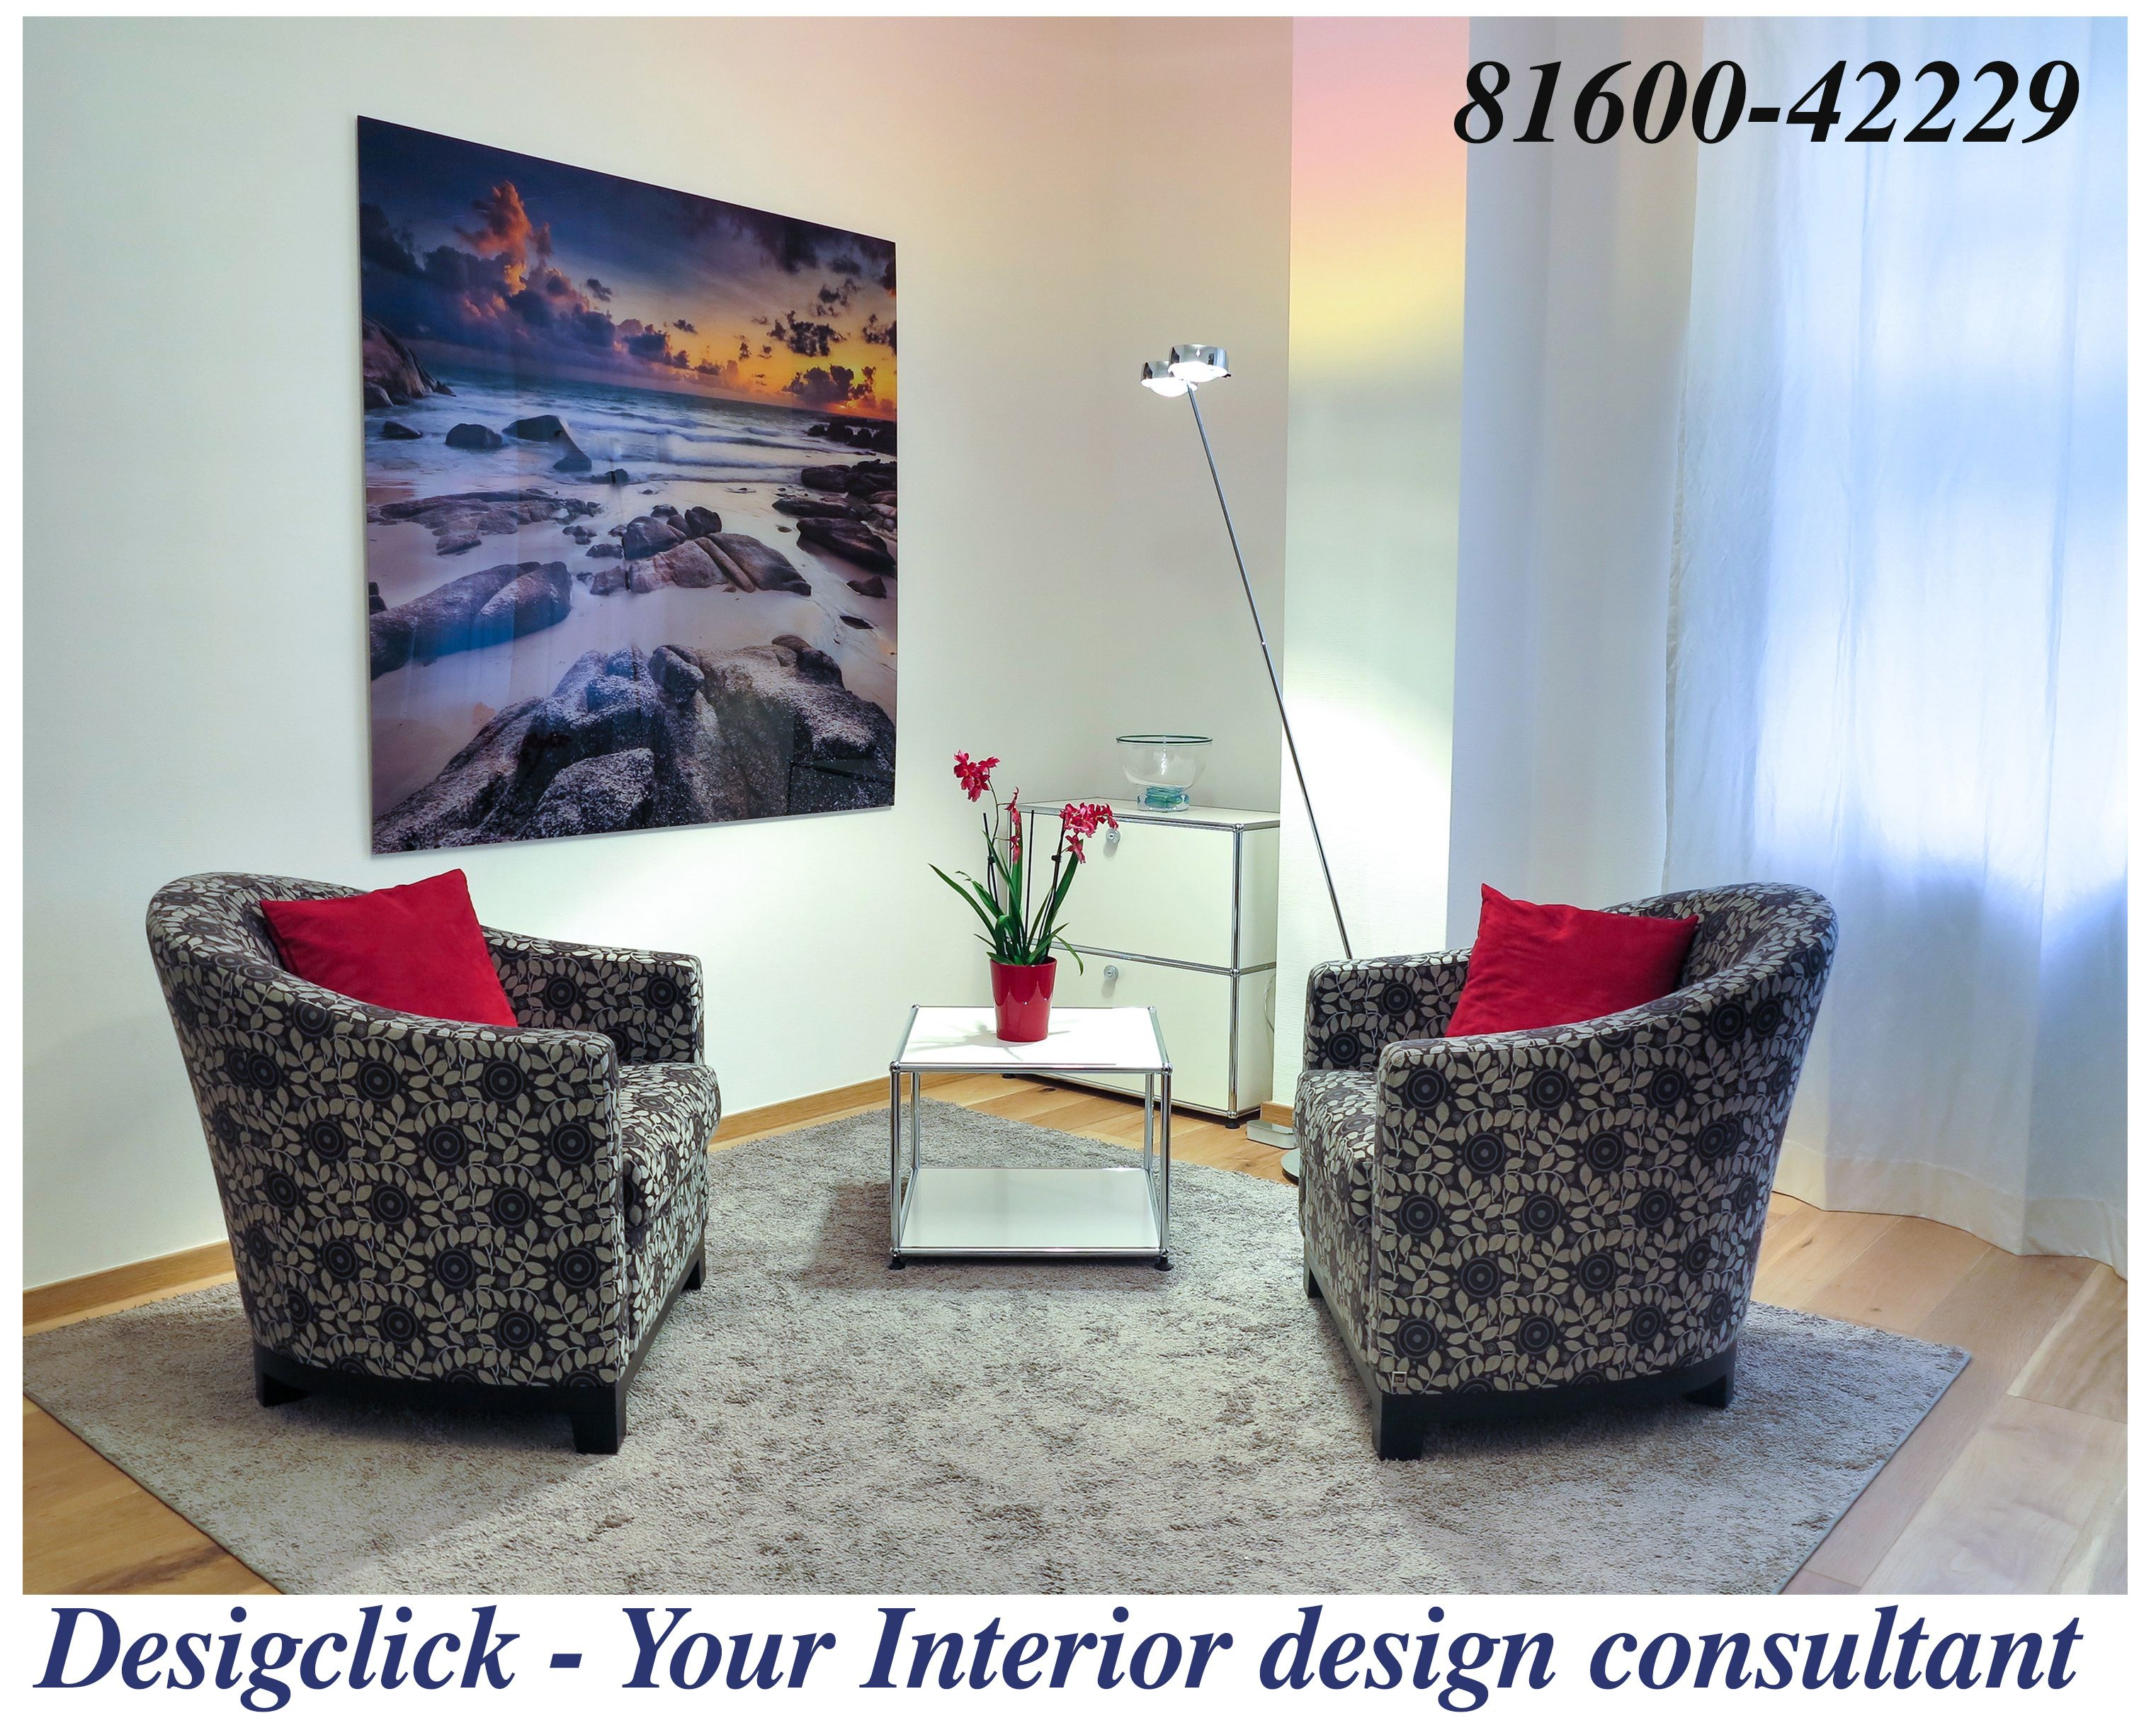 What Is The 3bhk Interior Design Cost In Ahmedabad Interior Design Cost Of A 2bhk Flat Looking For More Info Connect Wit Home Decor Decor Interior Design